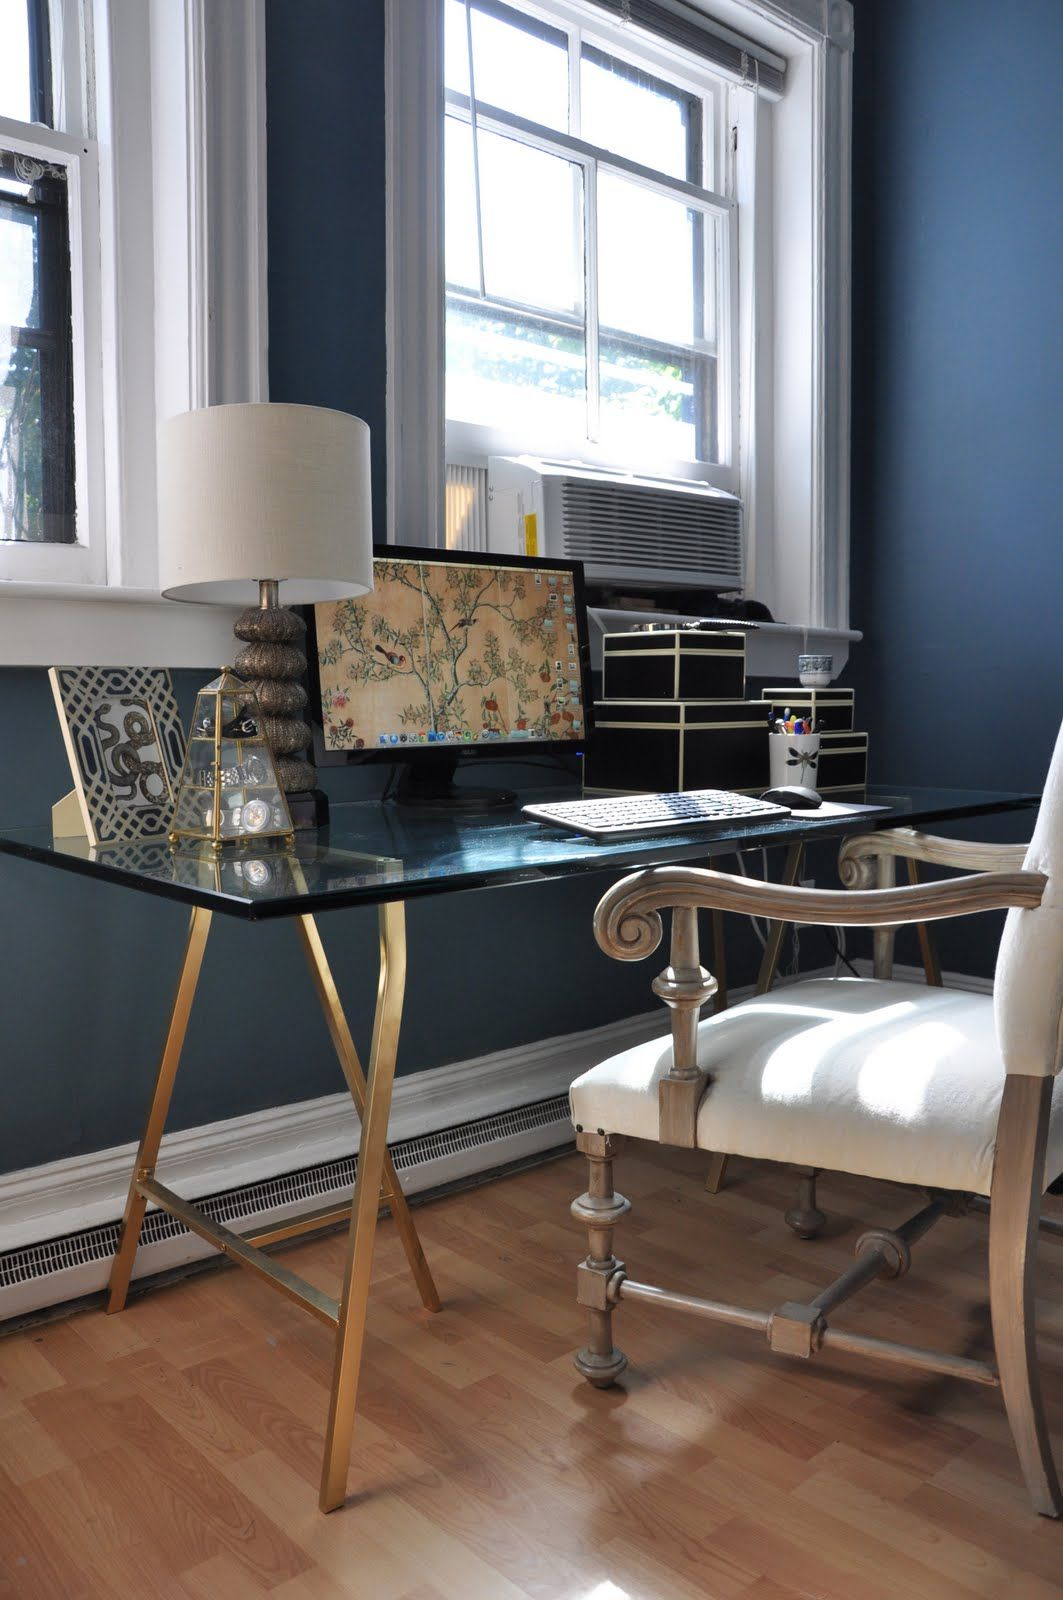 Nice Desk For The Bedroom Love The Gold Legs Glass Top Desk Home Decor Home